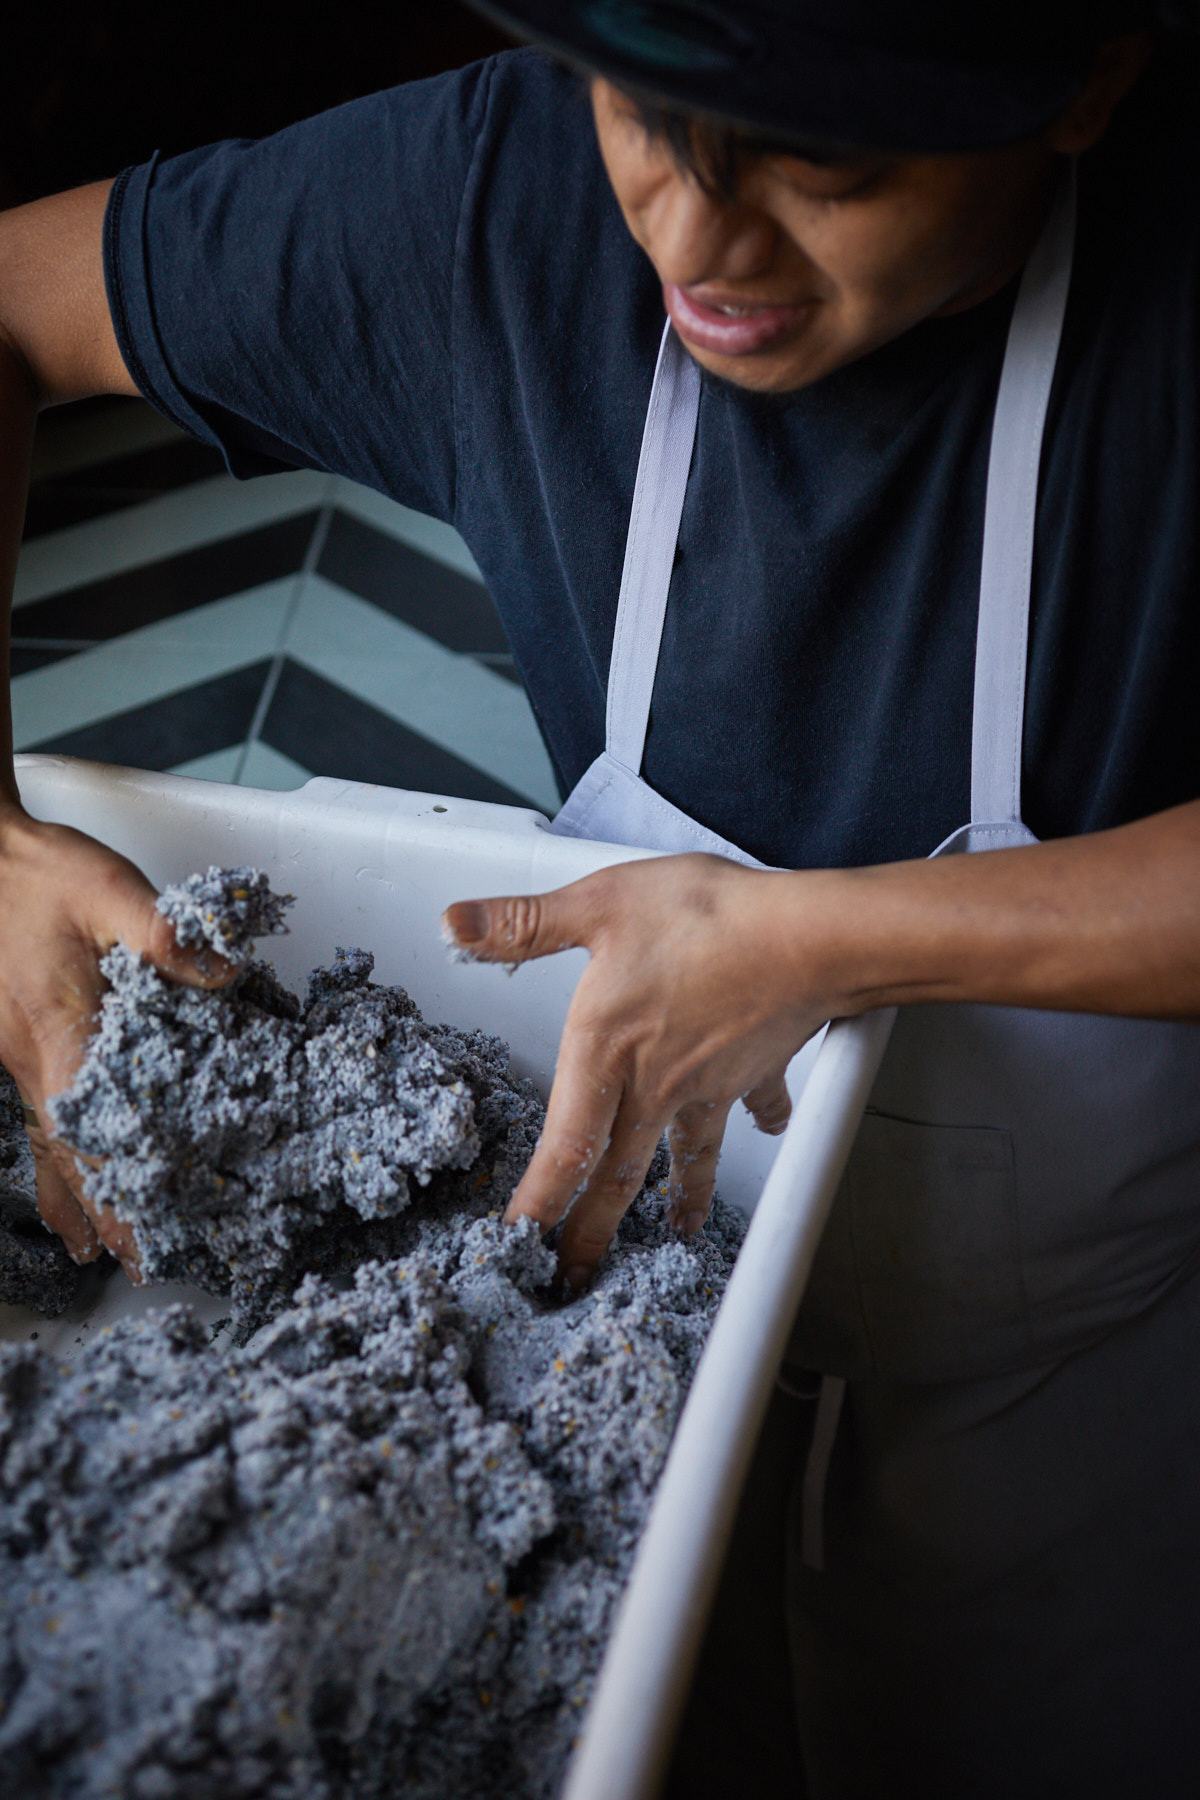 Jody Horton snaps a shot of a kitchen employee mixing blue corn masa with his hands in a large tray